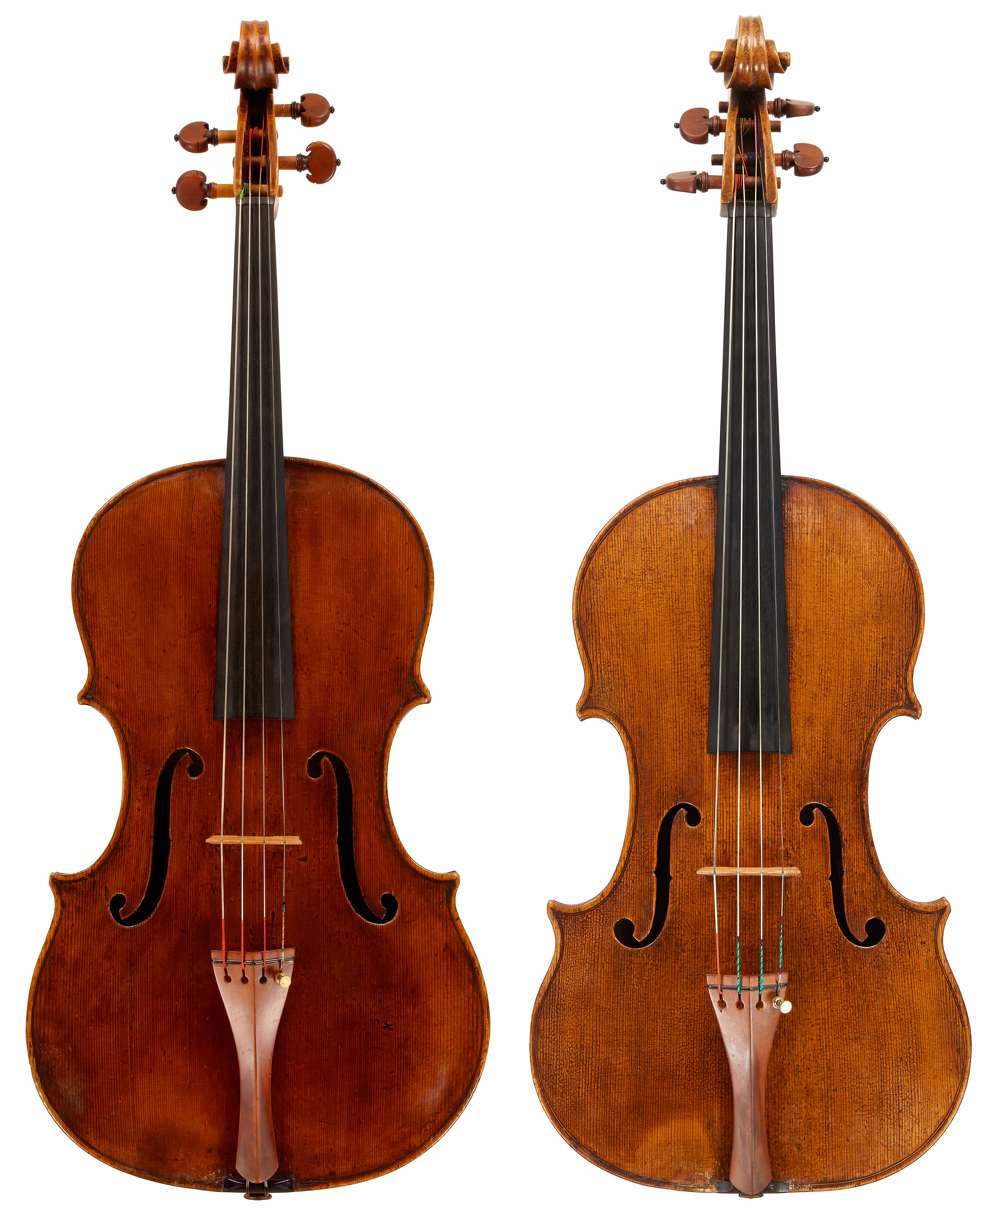 Violas made by Gaspar (left) and the Brothers Amati. Although there are superficial similarities, it is remarkable how little DNA they share. Photos: Tarisio